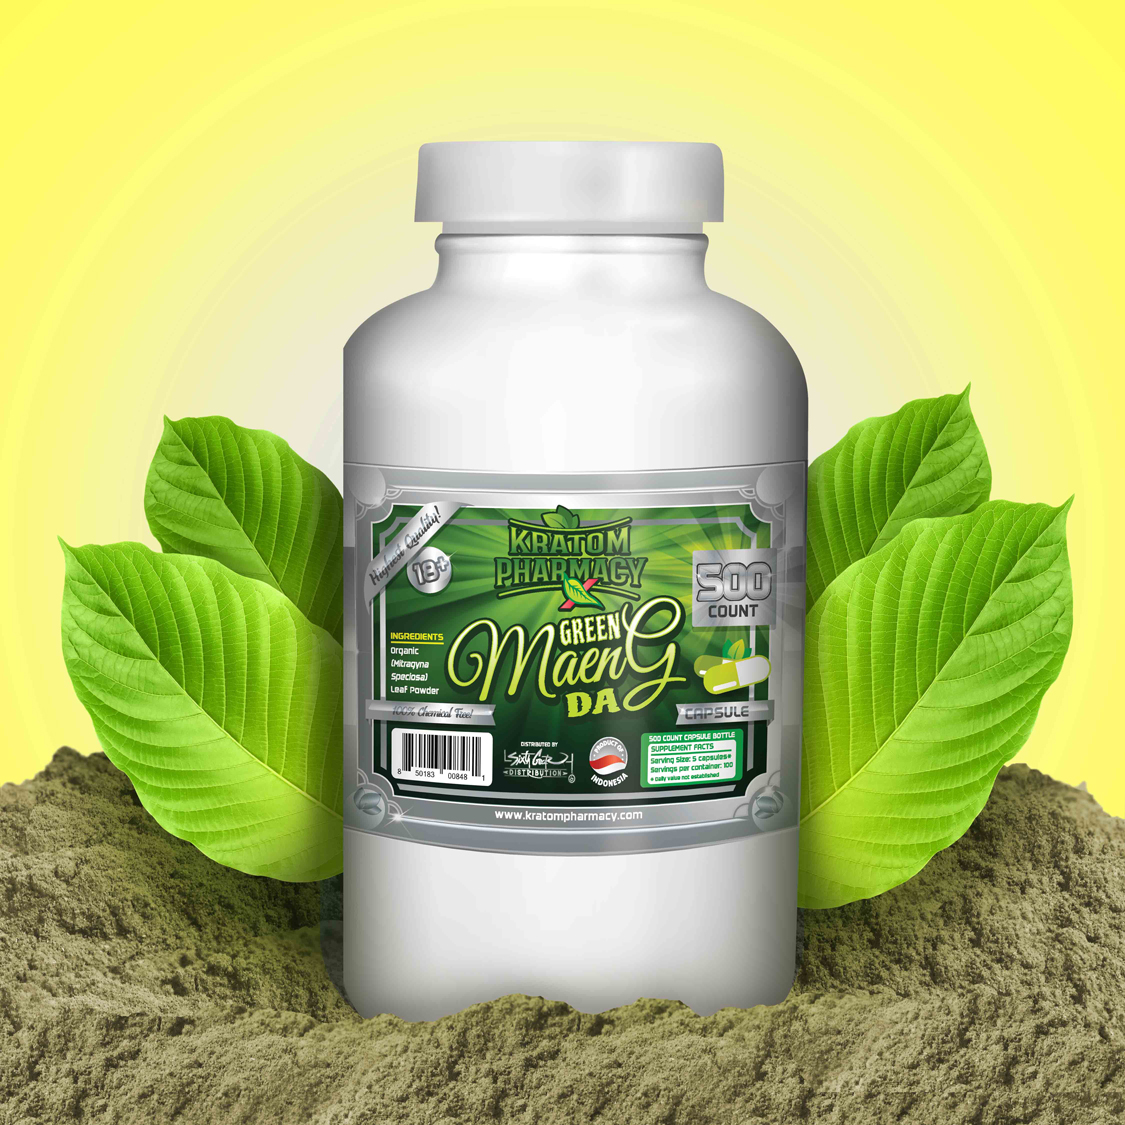 Green Maeng Da - 500 count